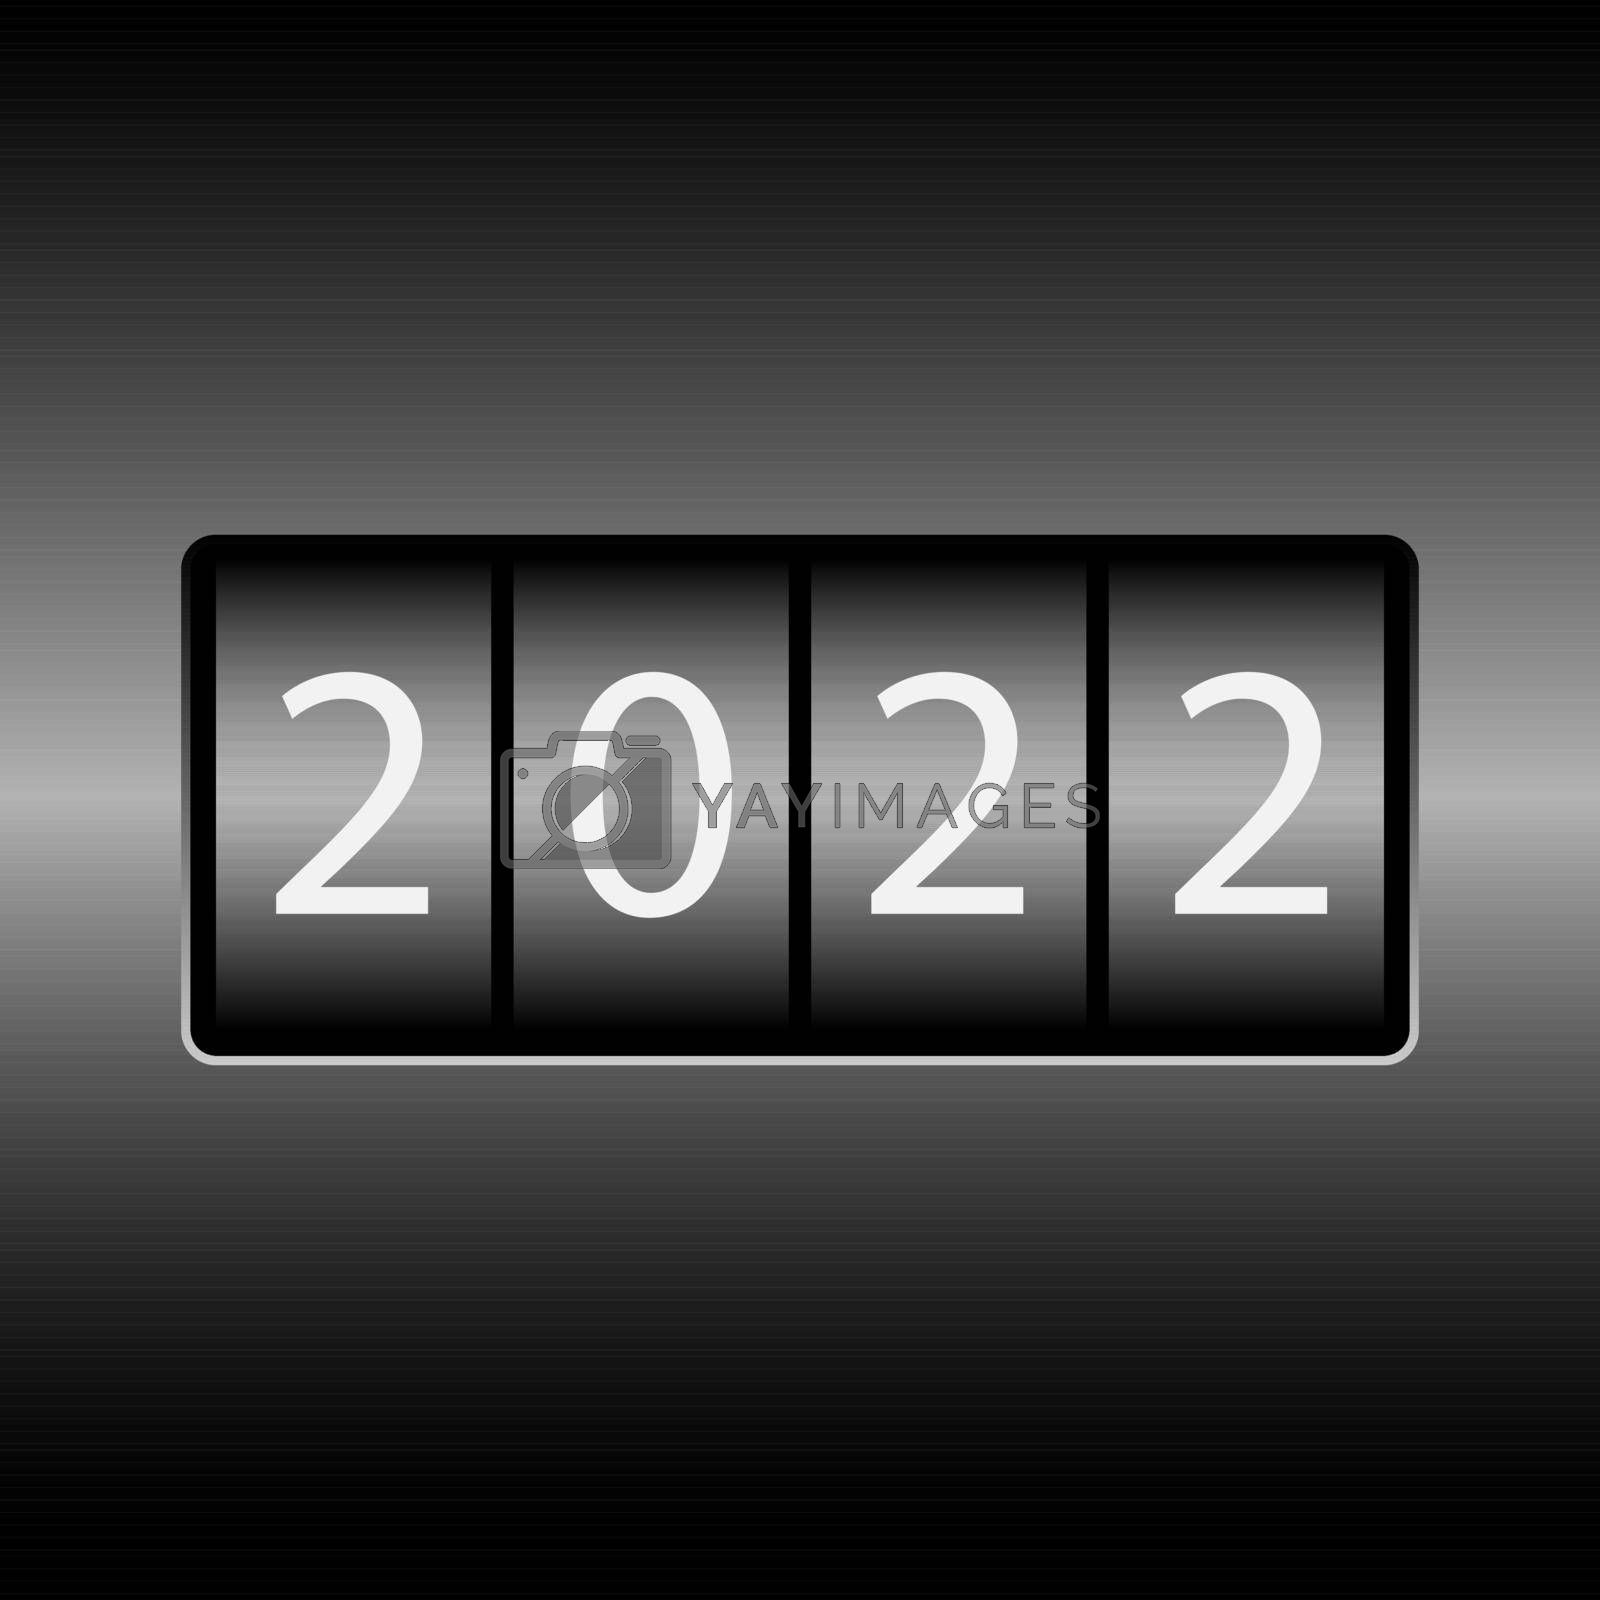 Odometer with the numbers 2022. New year 2022 is on the odometer. Merry Christmas and Happy New Year. Vector illustration.